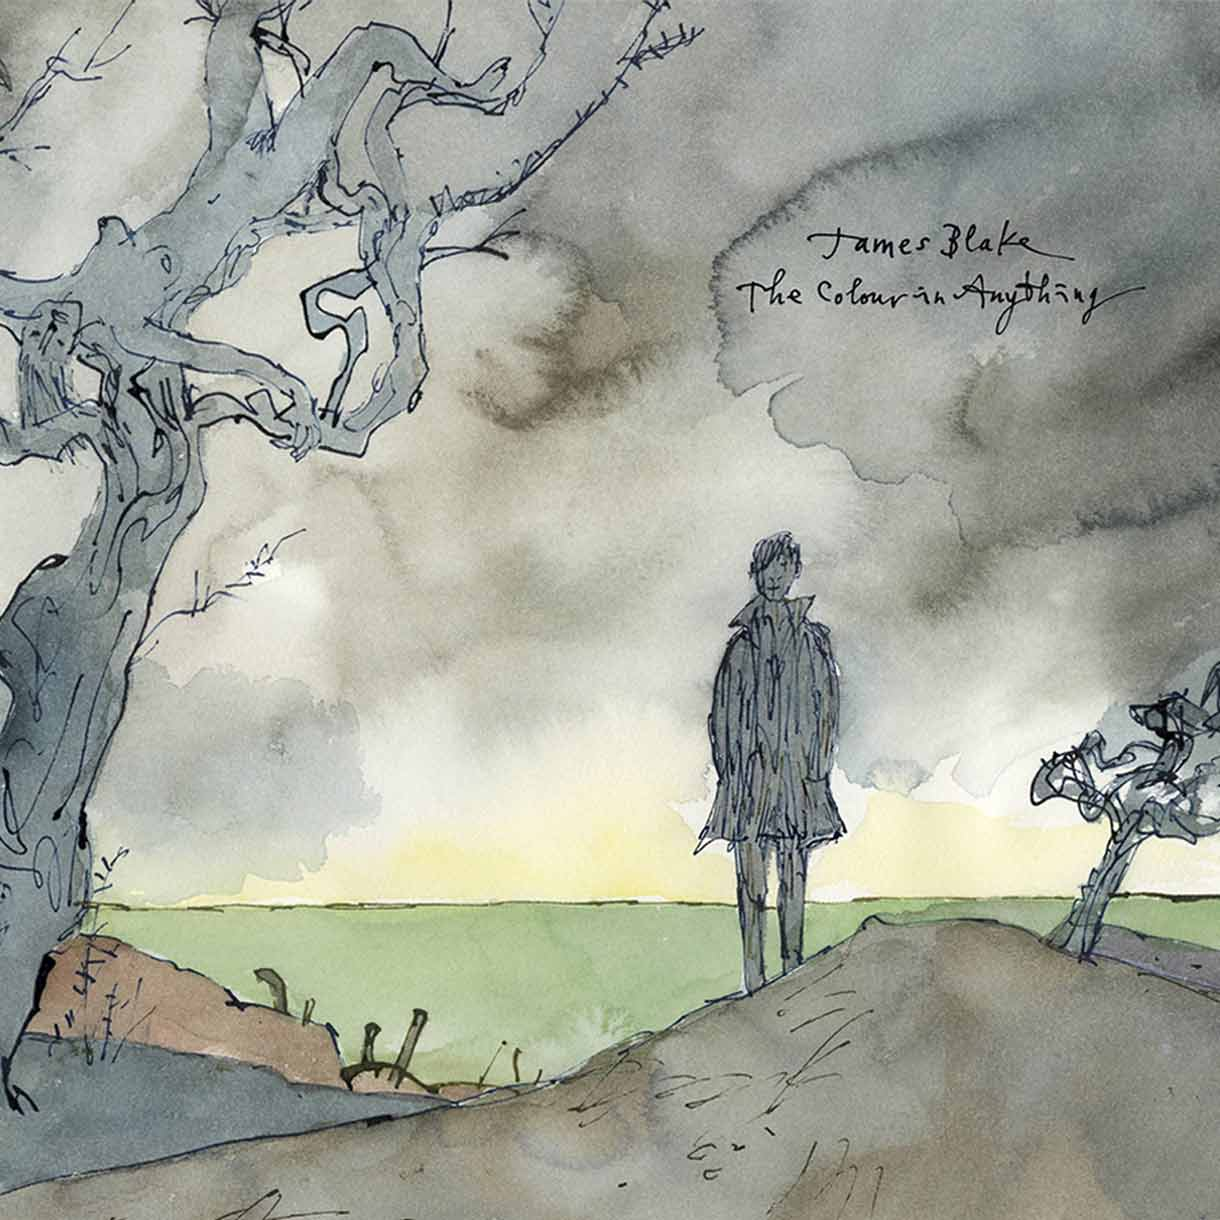 """JAMES BLAKE """"The Colour In Anything"""""""